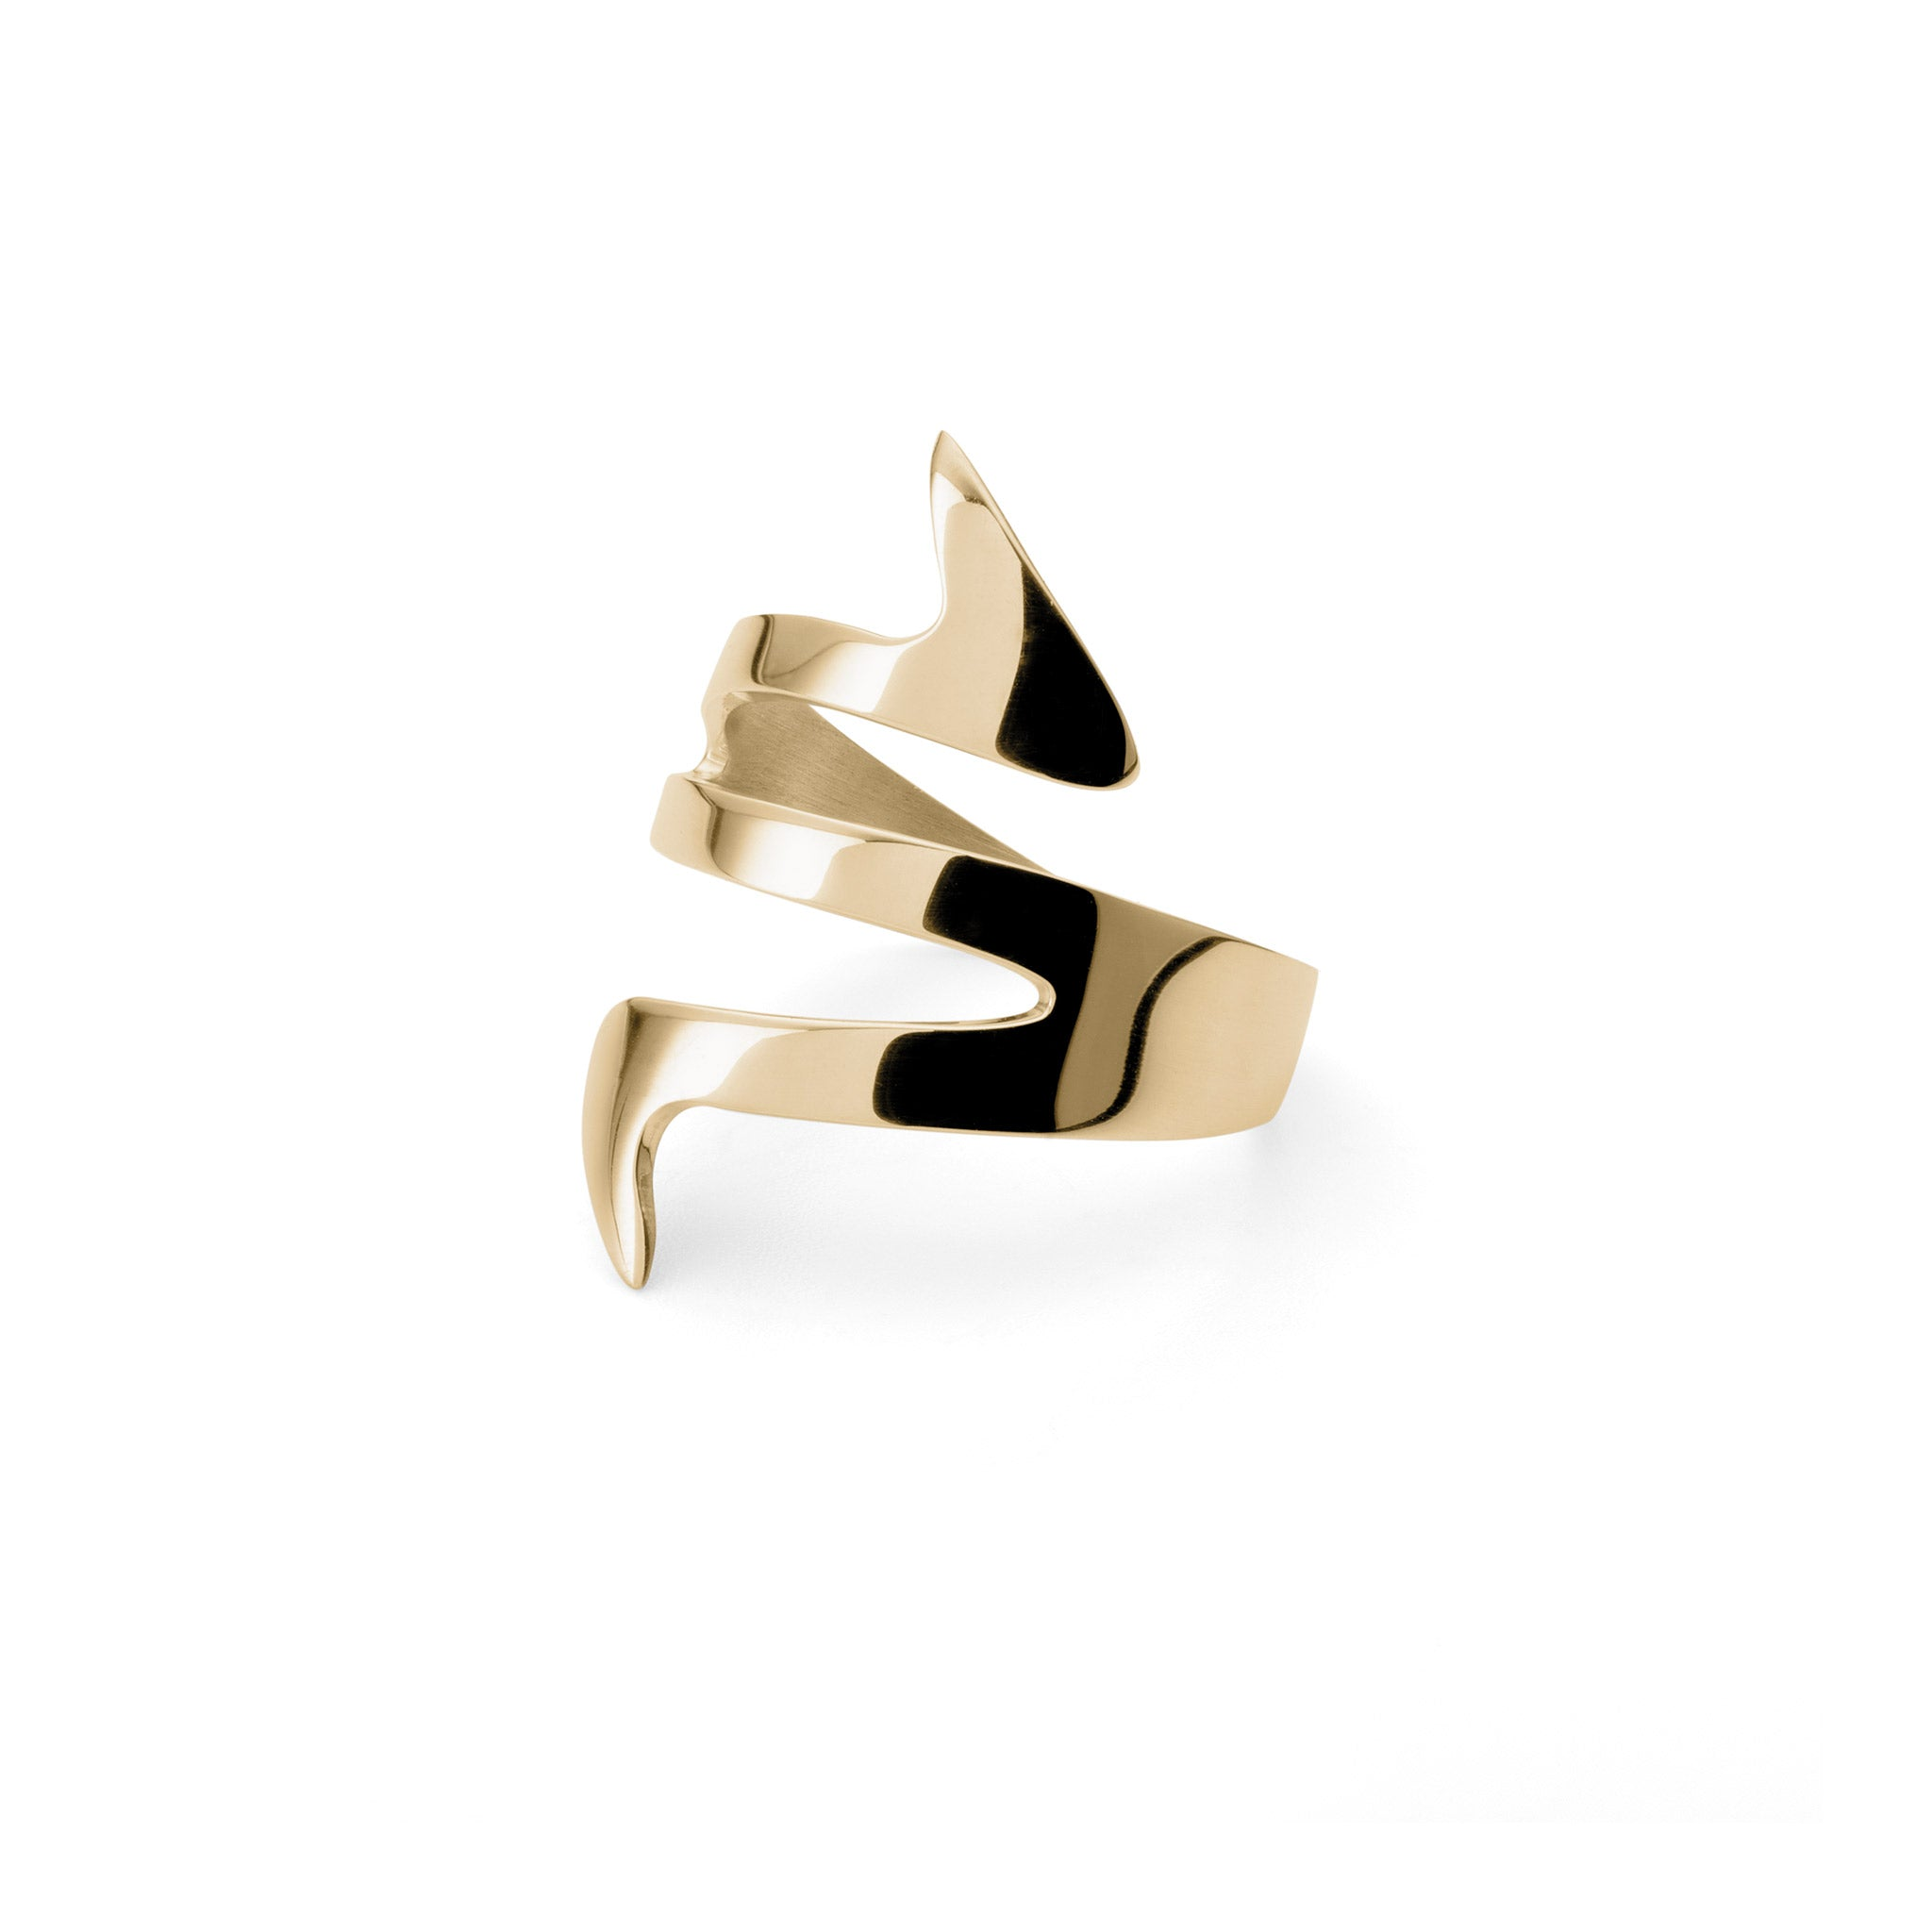 Ziggy Sterling silver ring for women in yellow gold